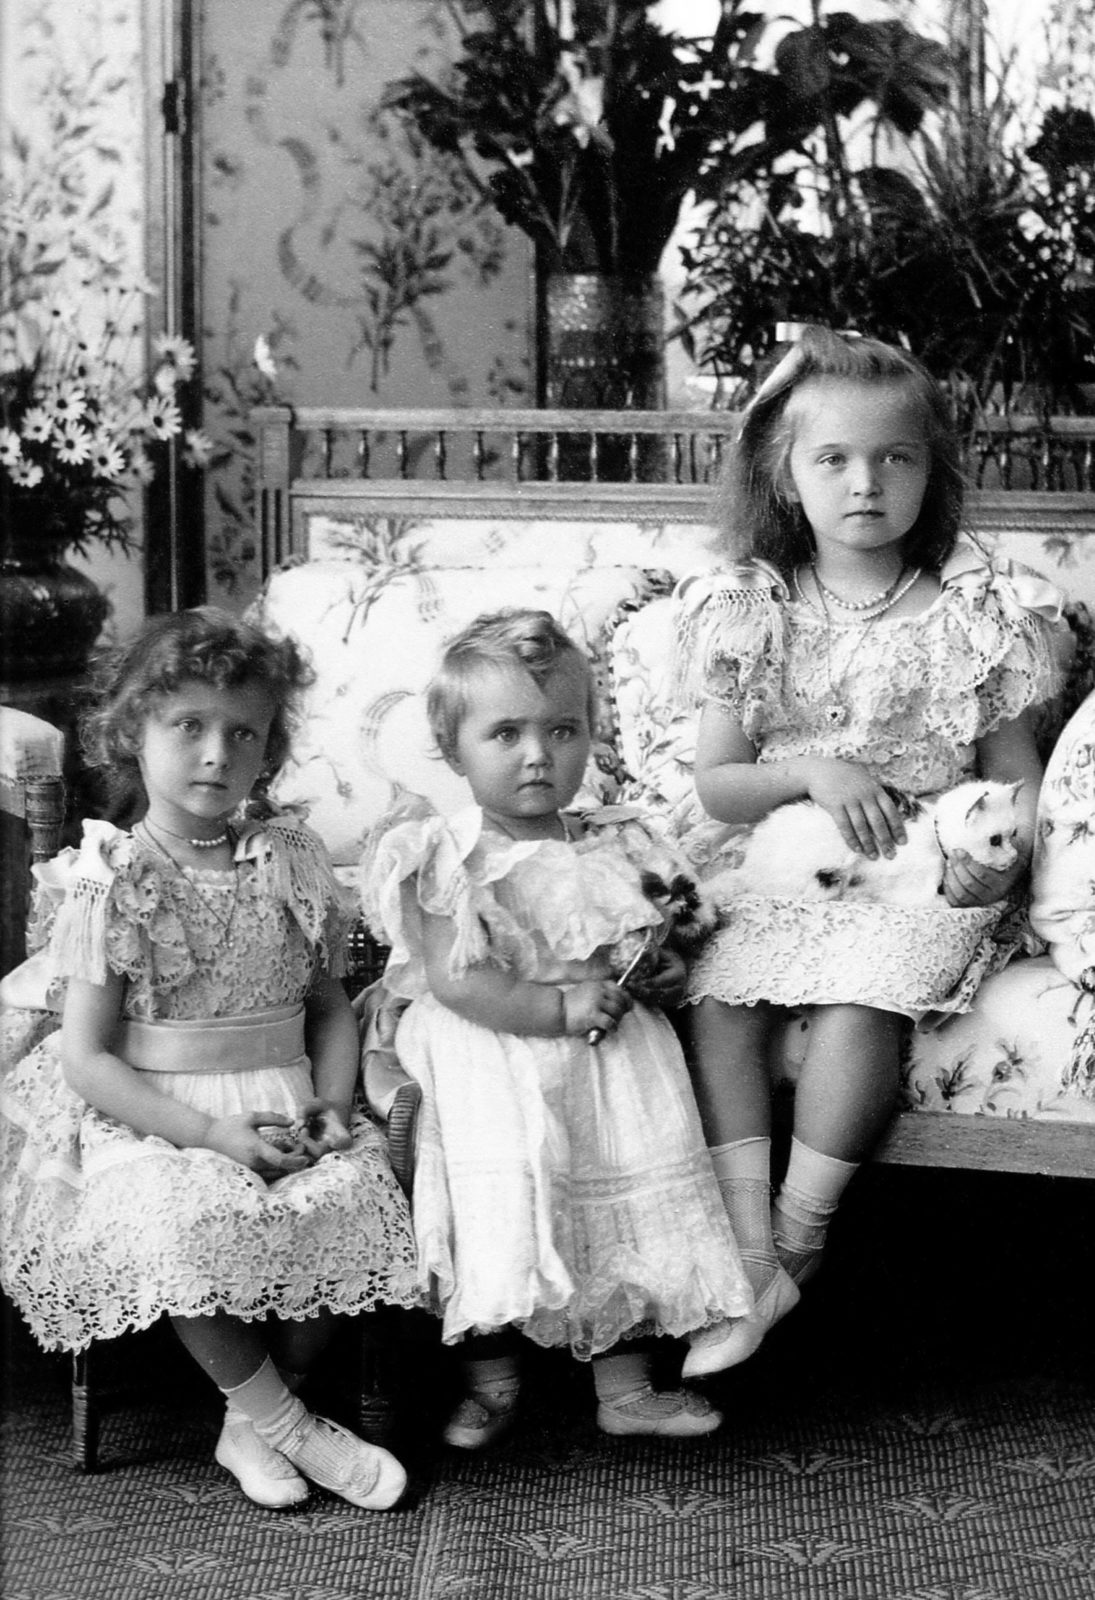 Daughters of Emperor Nicholas II Grand Princess Tatiana, Maria and Olga.